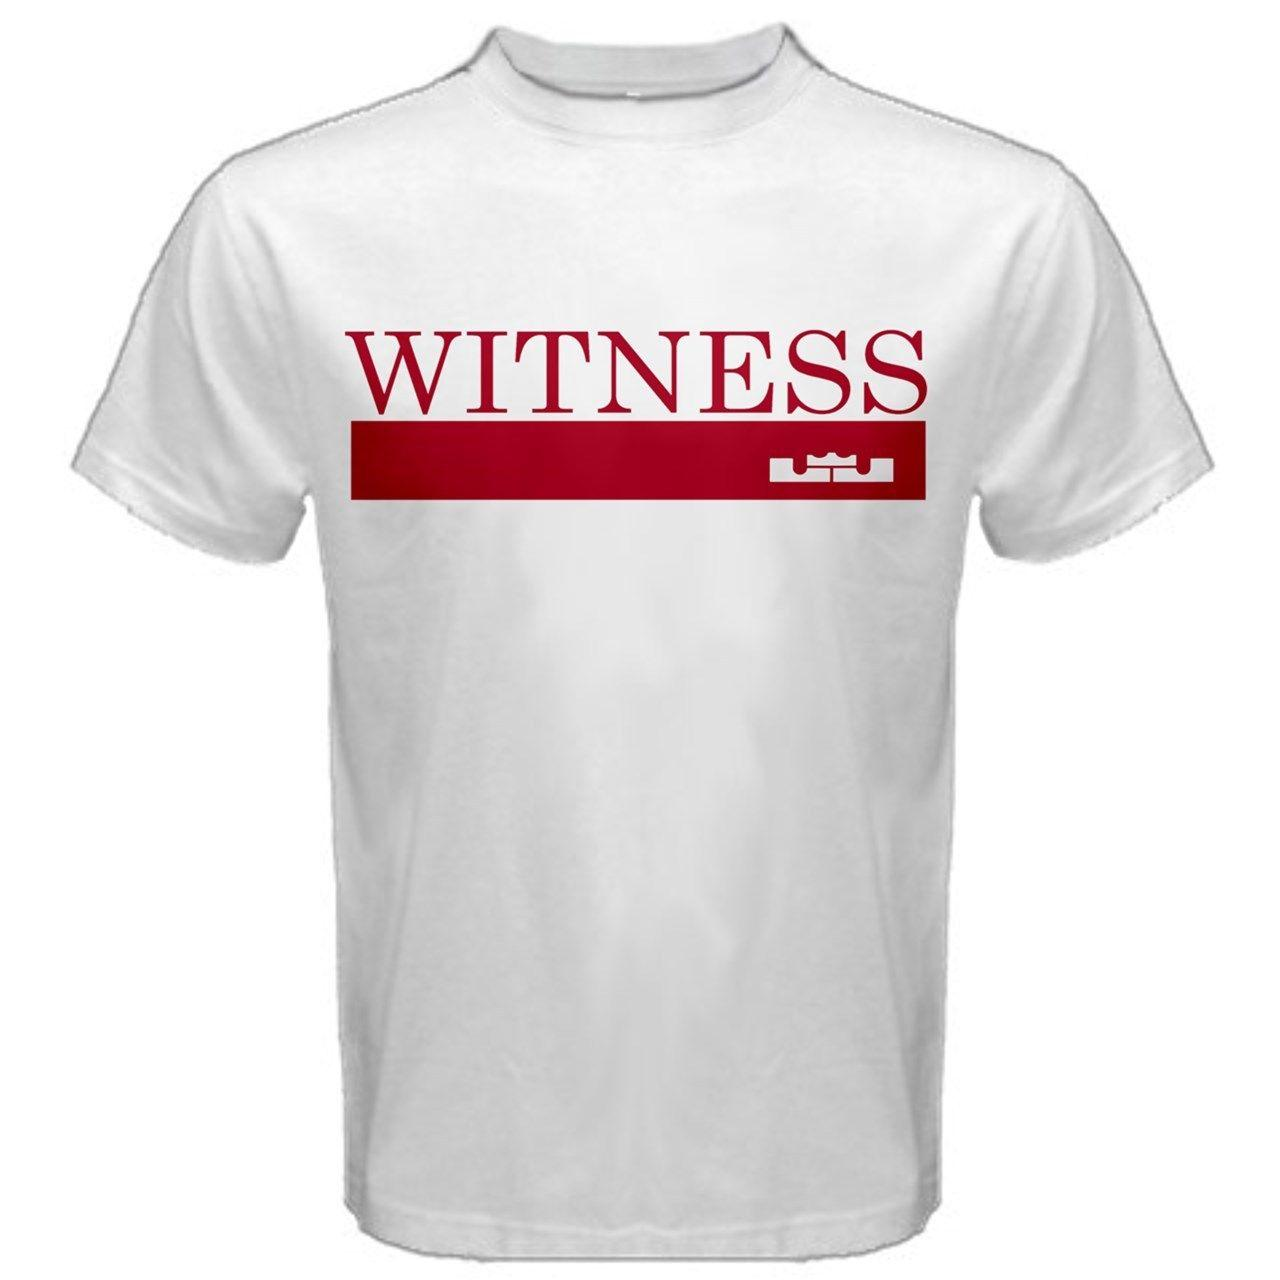 buy online ad53d 2a29e Lebron James King Crown Witness Cavs 23 New T-SHIRT TEES LJ1